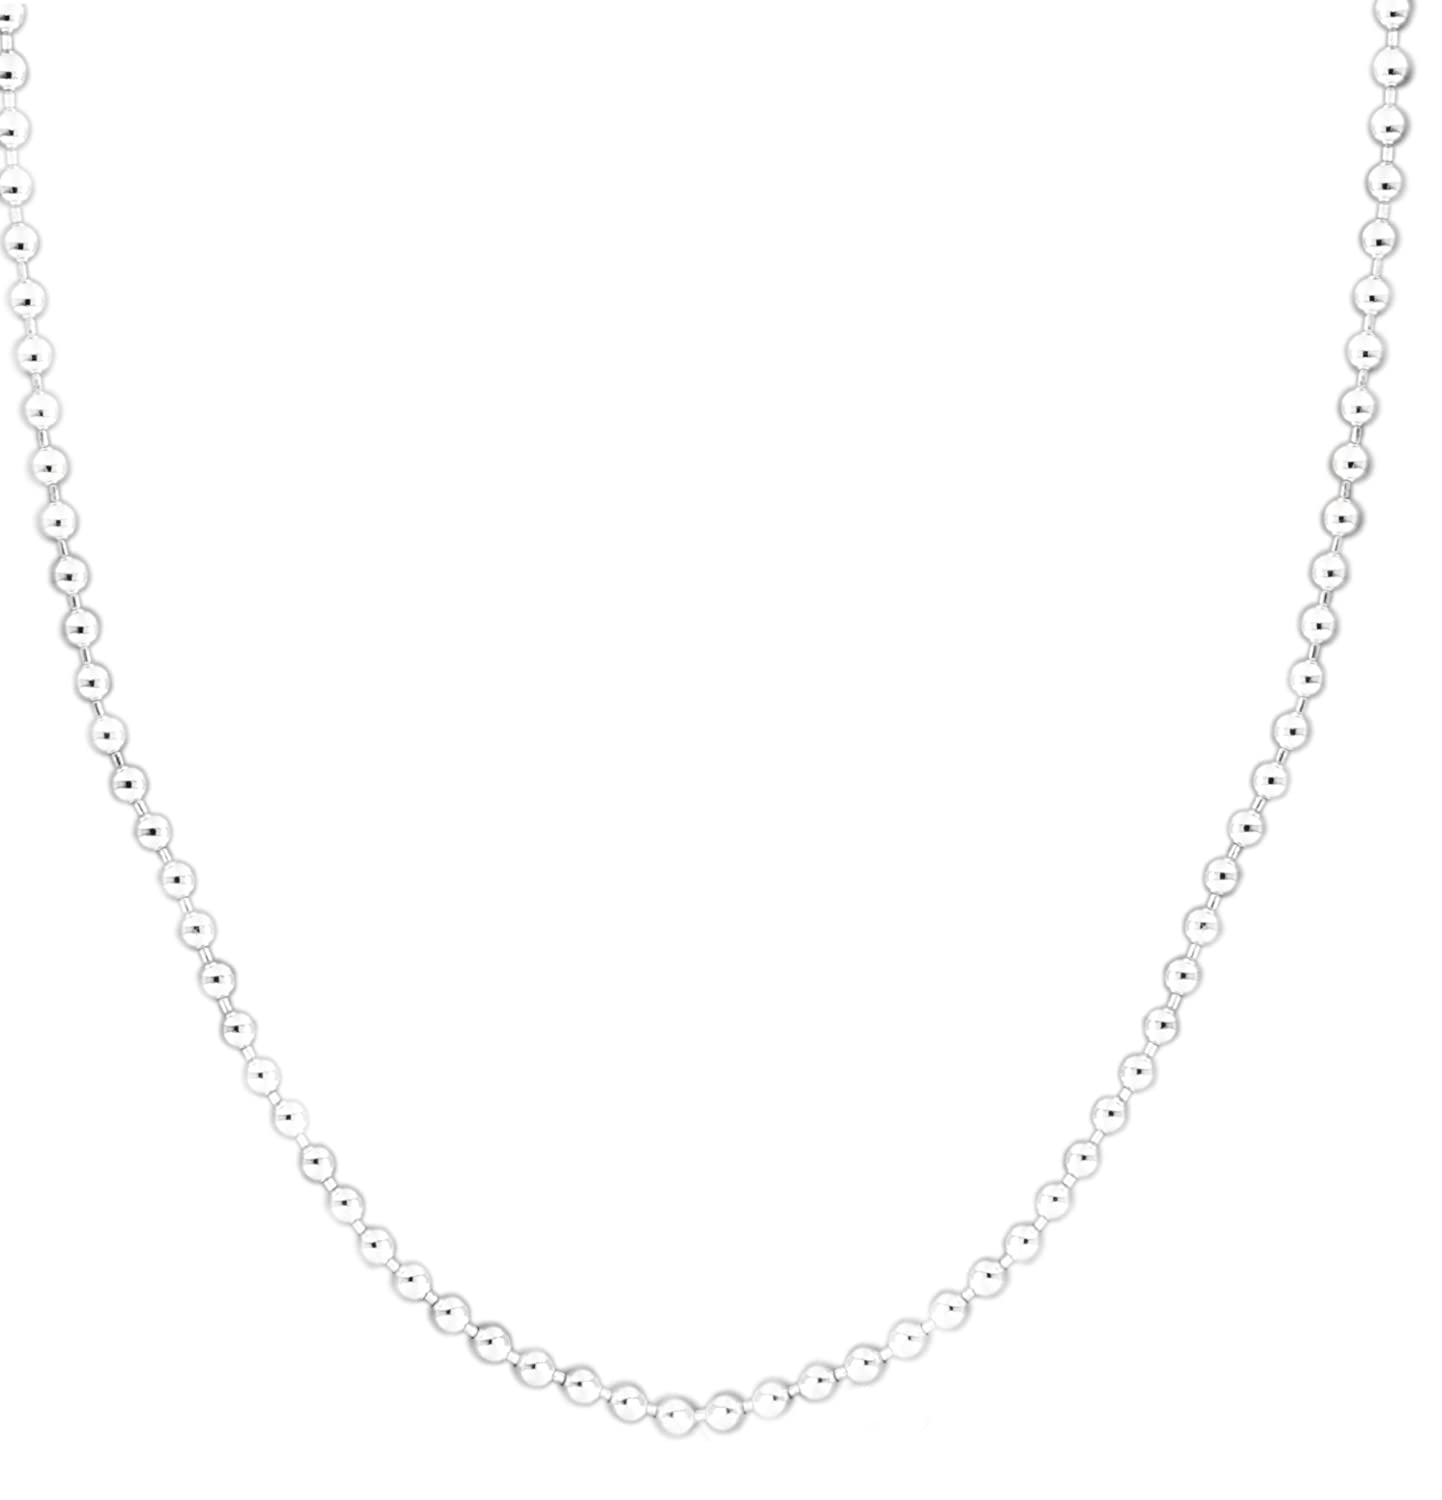 Tuscany Silver Sterling Silver 3mm Ball Chain Necklace of 56cm/22 zTEUtmeV8